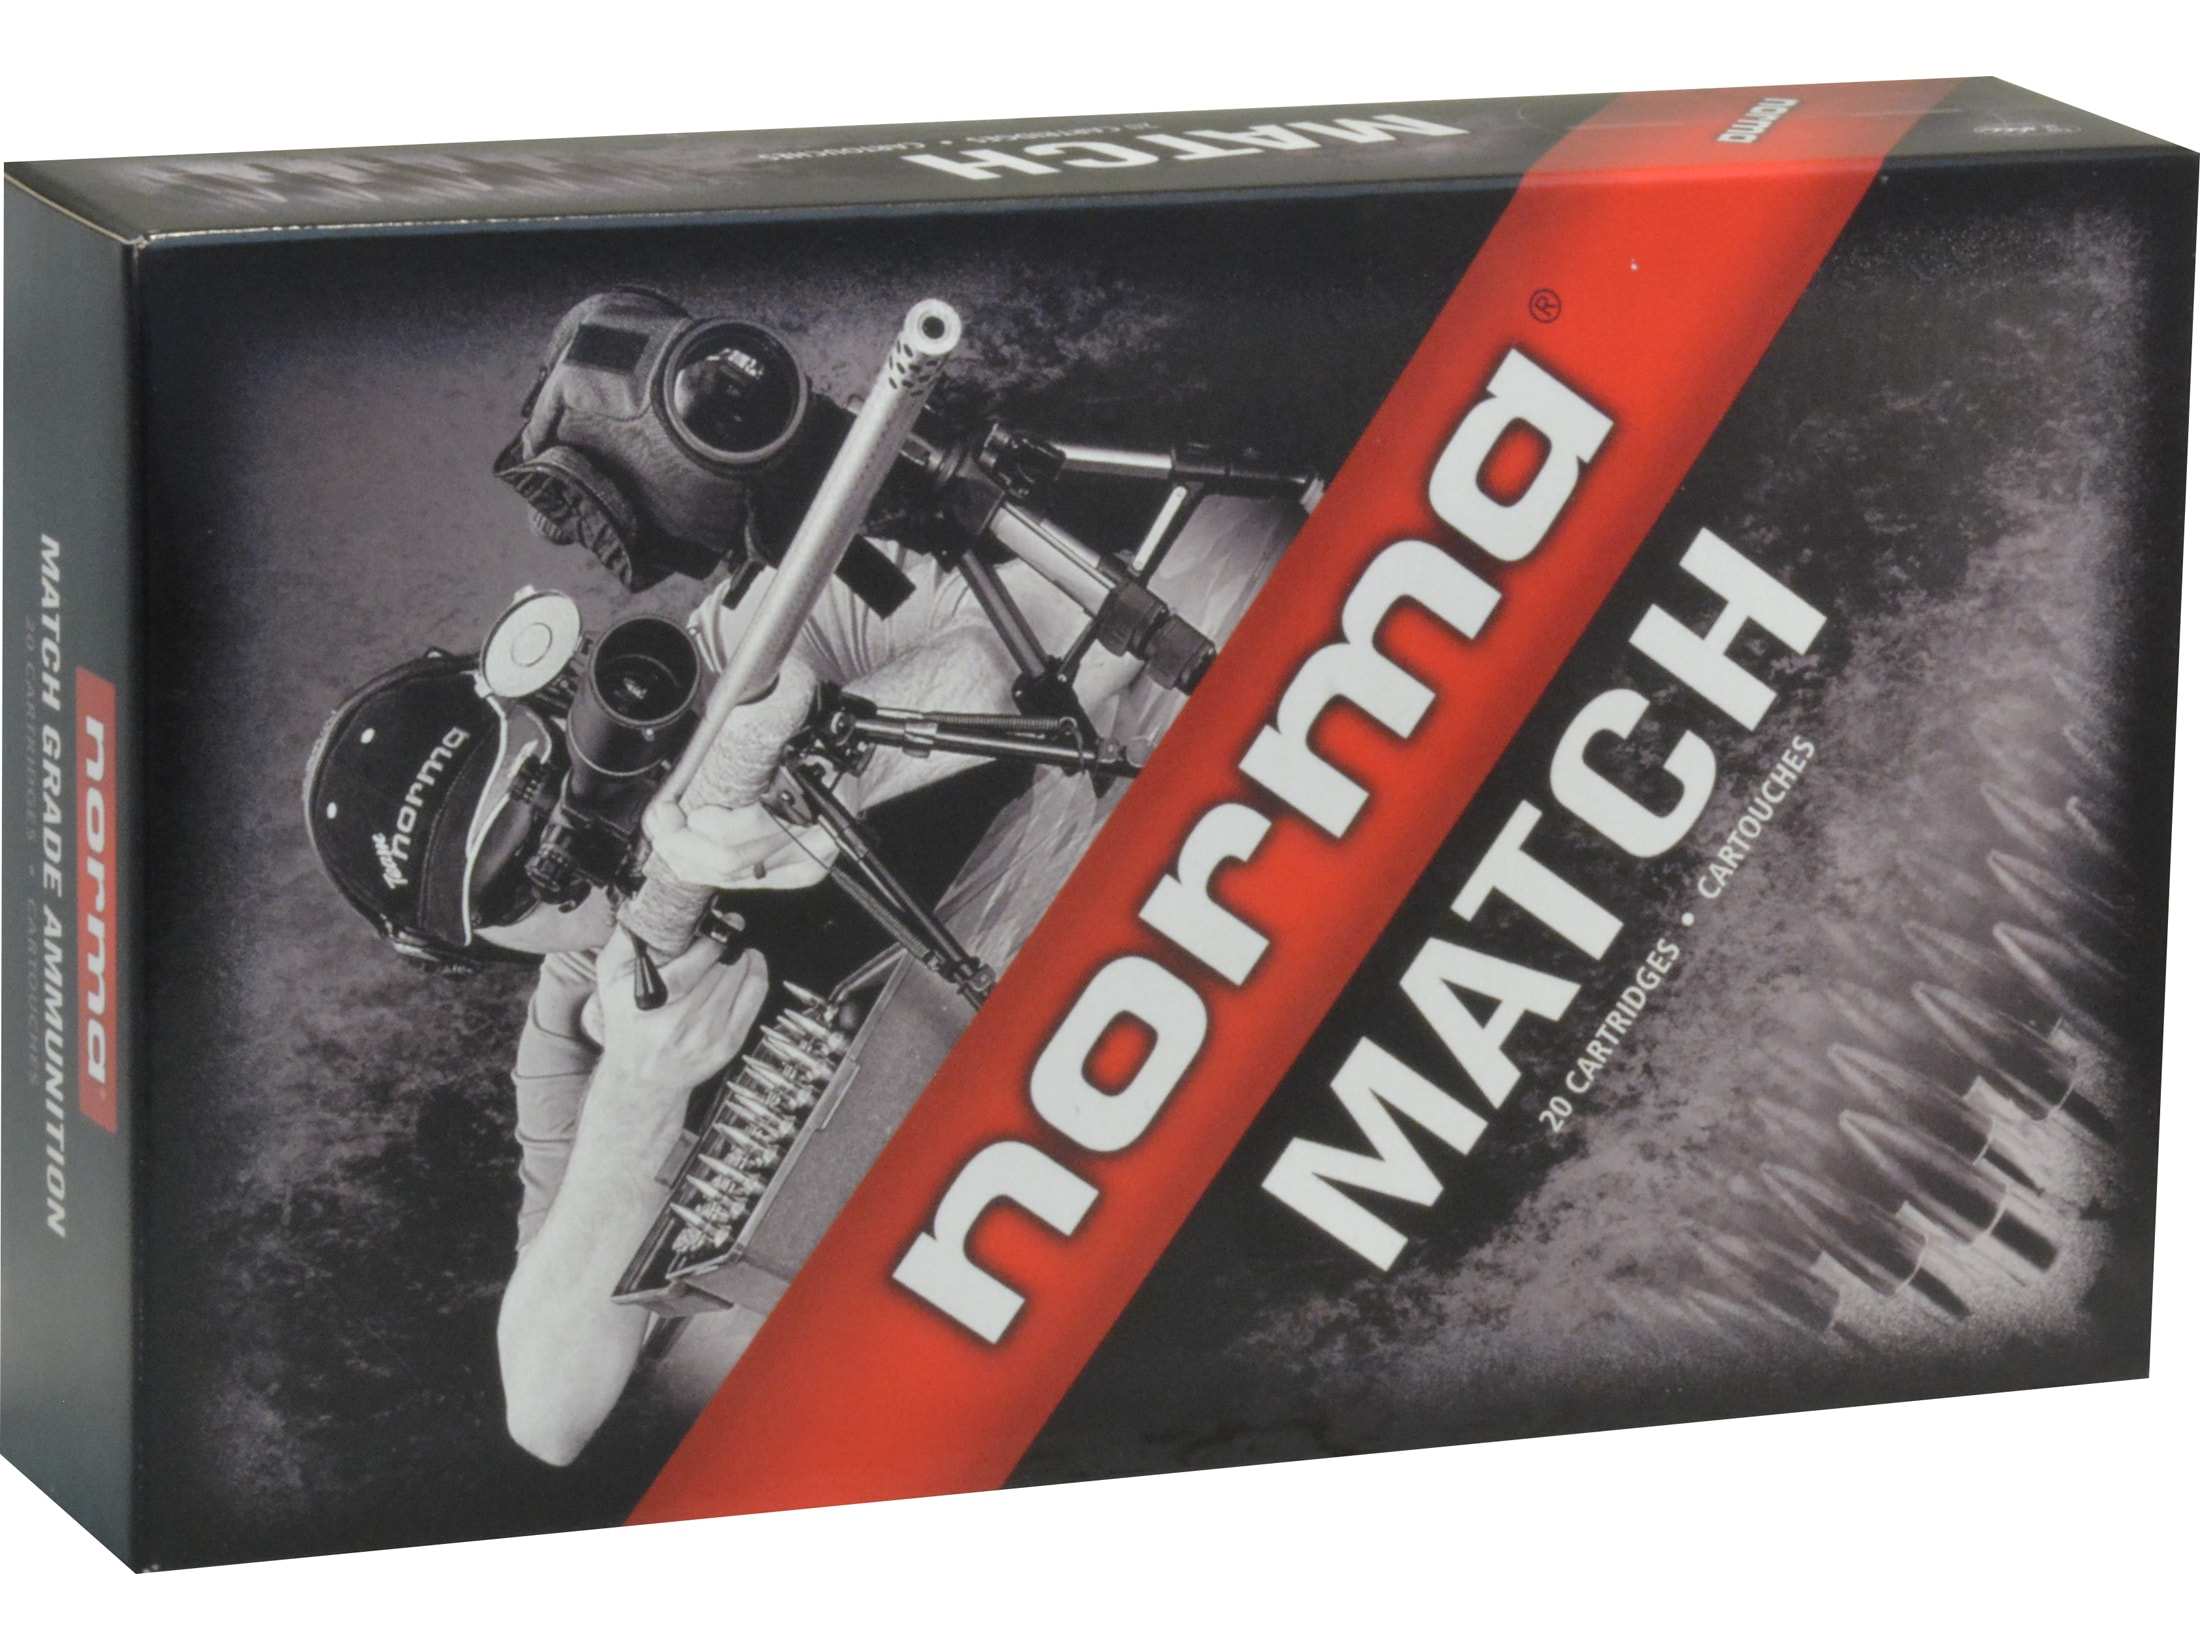 Image of Norma Match Ammunition 300 Norma Magnum 230 Grain Berger Hybrid Hollow Point Box of 20